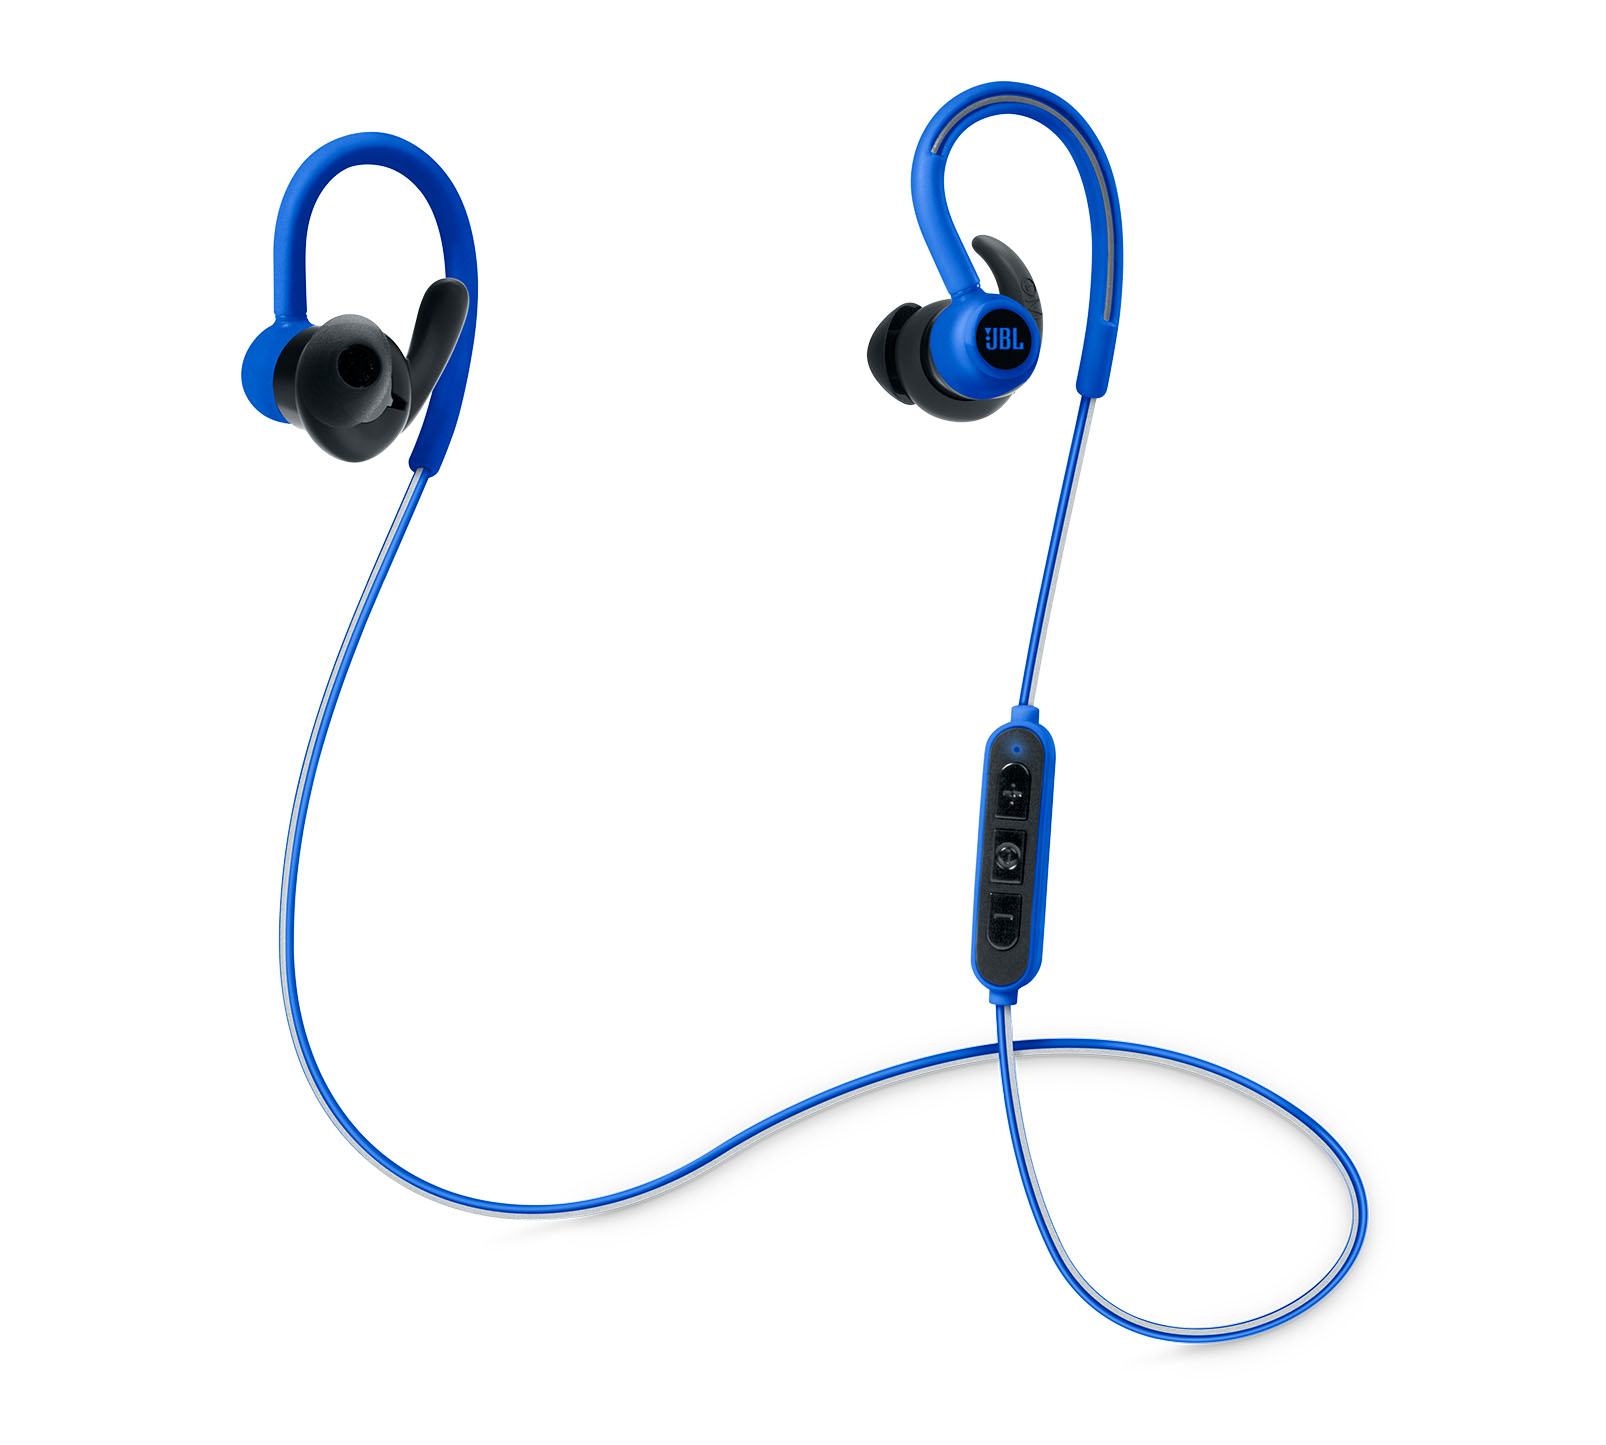 JBL Reflect Contour Blue: Secure Fit & Sweat Proof Wireless Sport Headphones + JBL Signature Sound